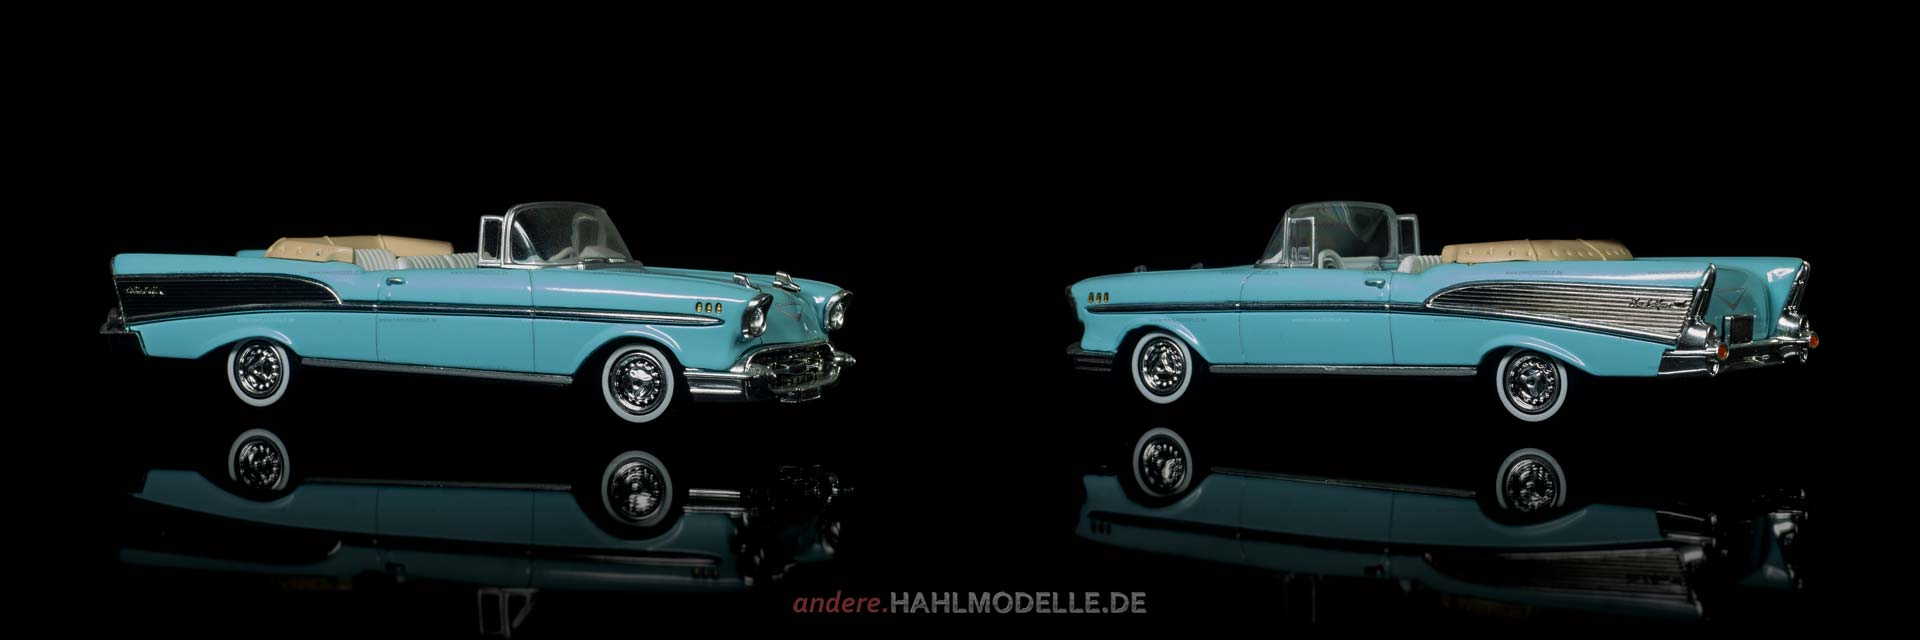 Chevrolet Bel Air (Serie 2400C) | Cabriolet | Ixo (Del Prado Car Collection) | 1:43 | www.andere.hahlmodelle.de